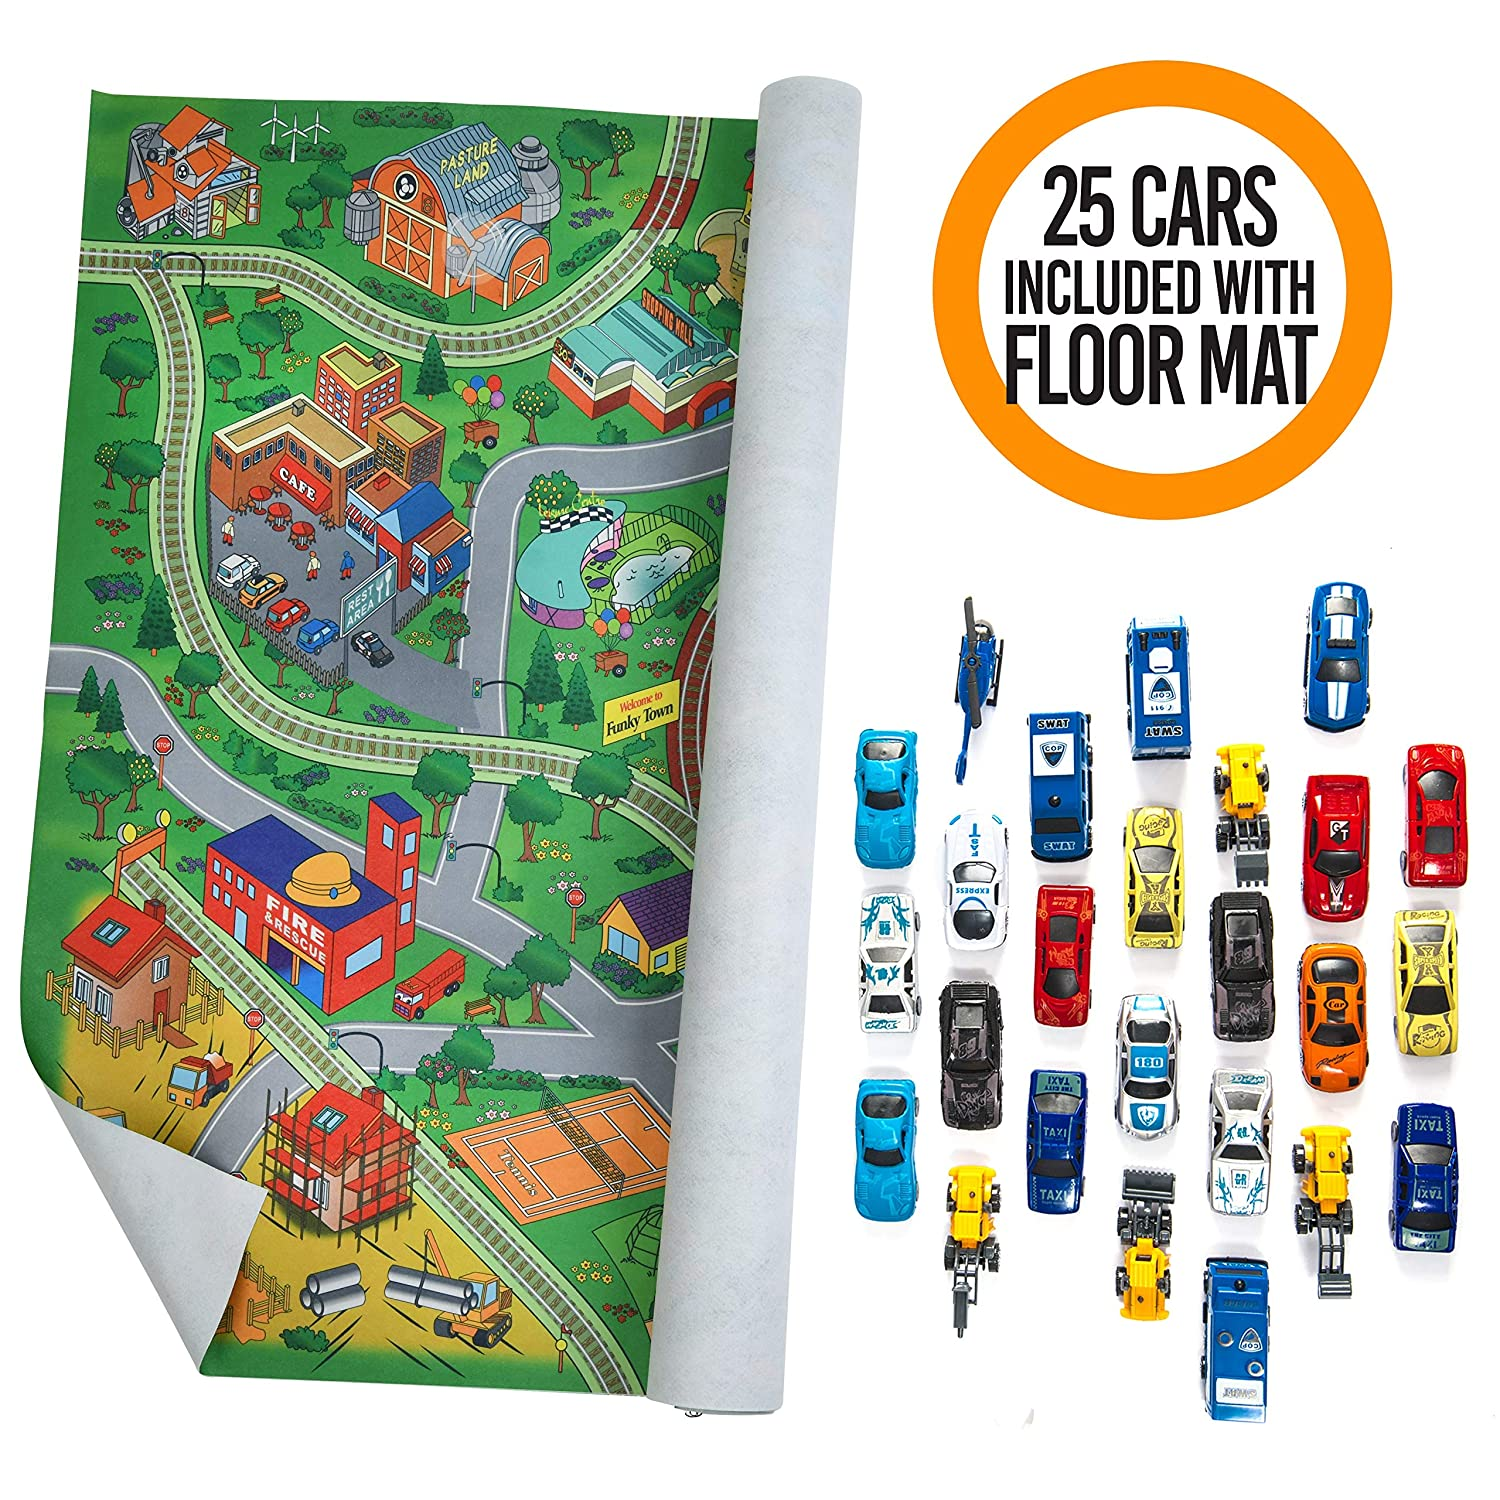 Prextex Giant Fabric Play Mat with 25 Die Cast Toy Cars Included Play Mat Size 5x5 Feet